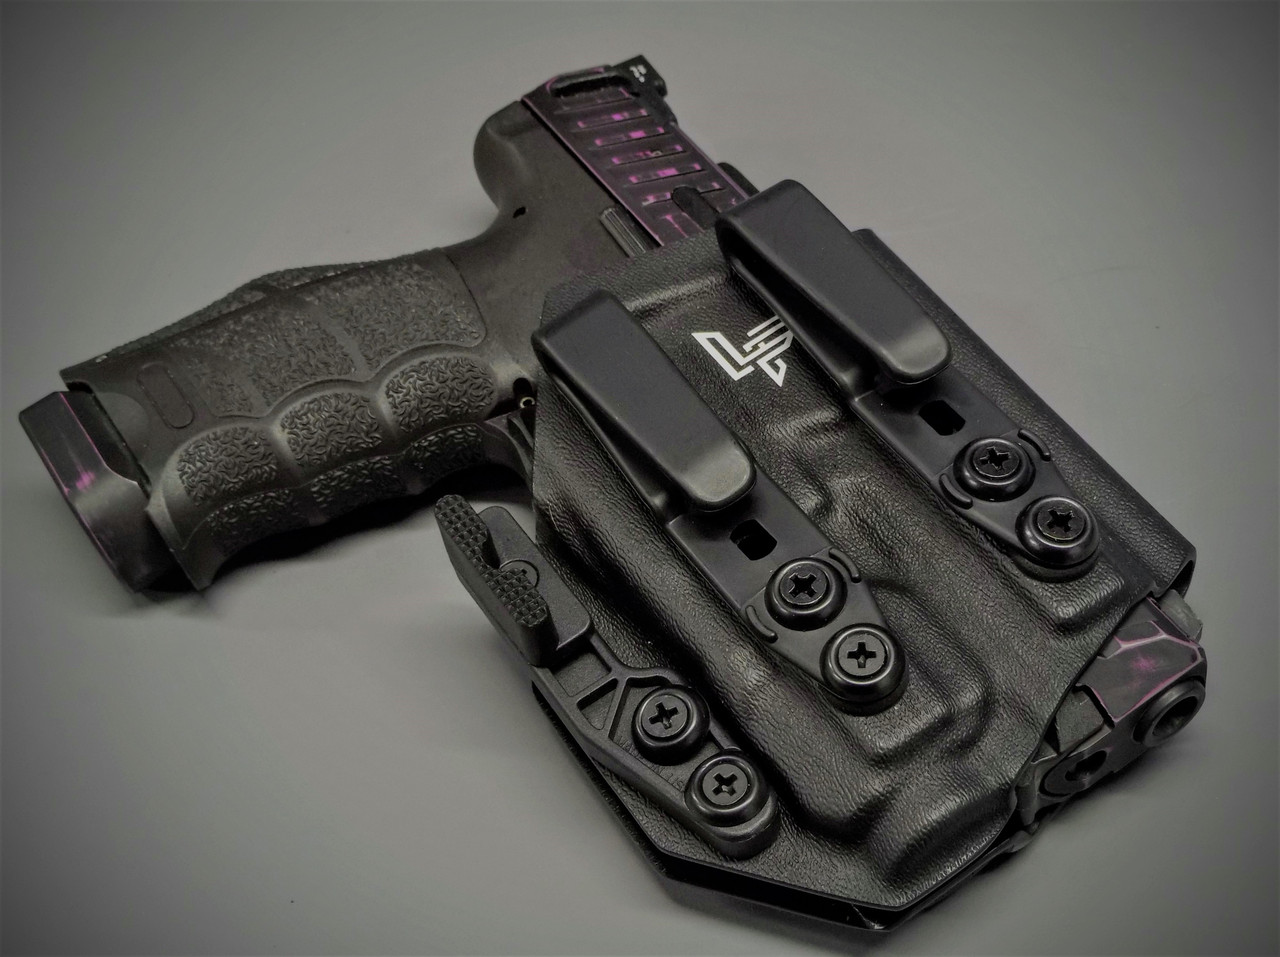 HK VP9 Streamlight TLR7 Holster